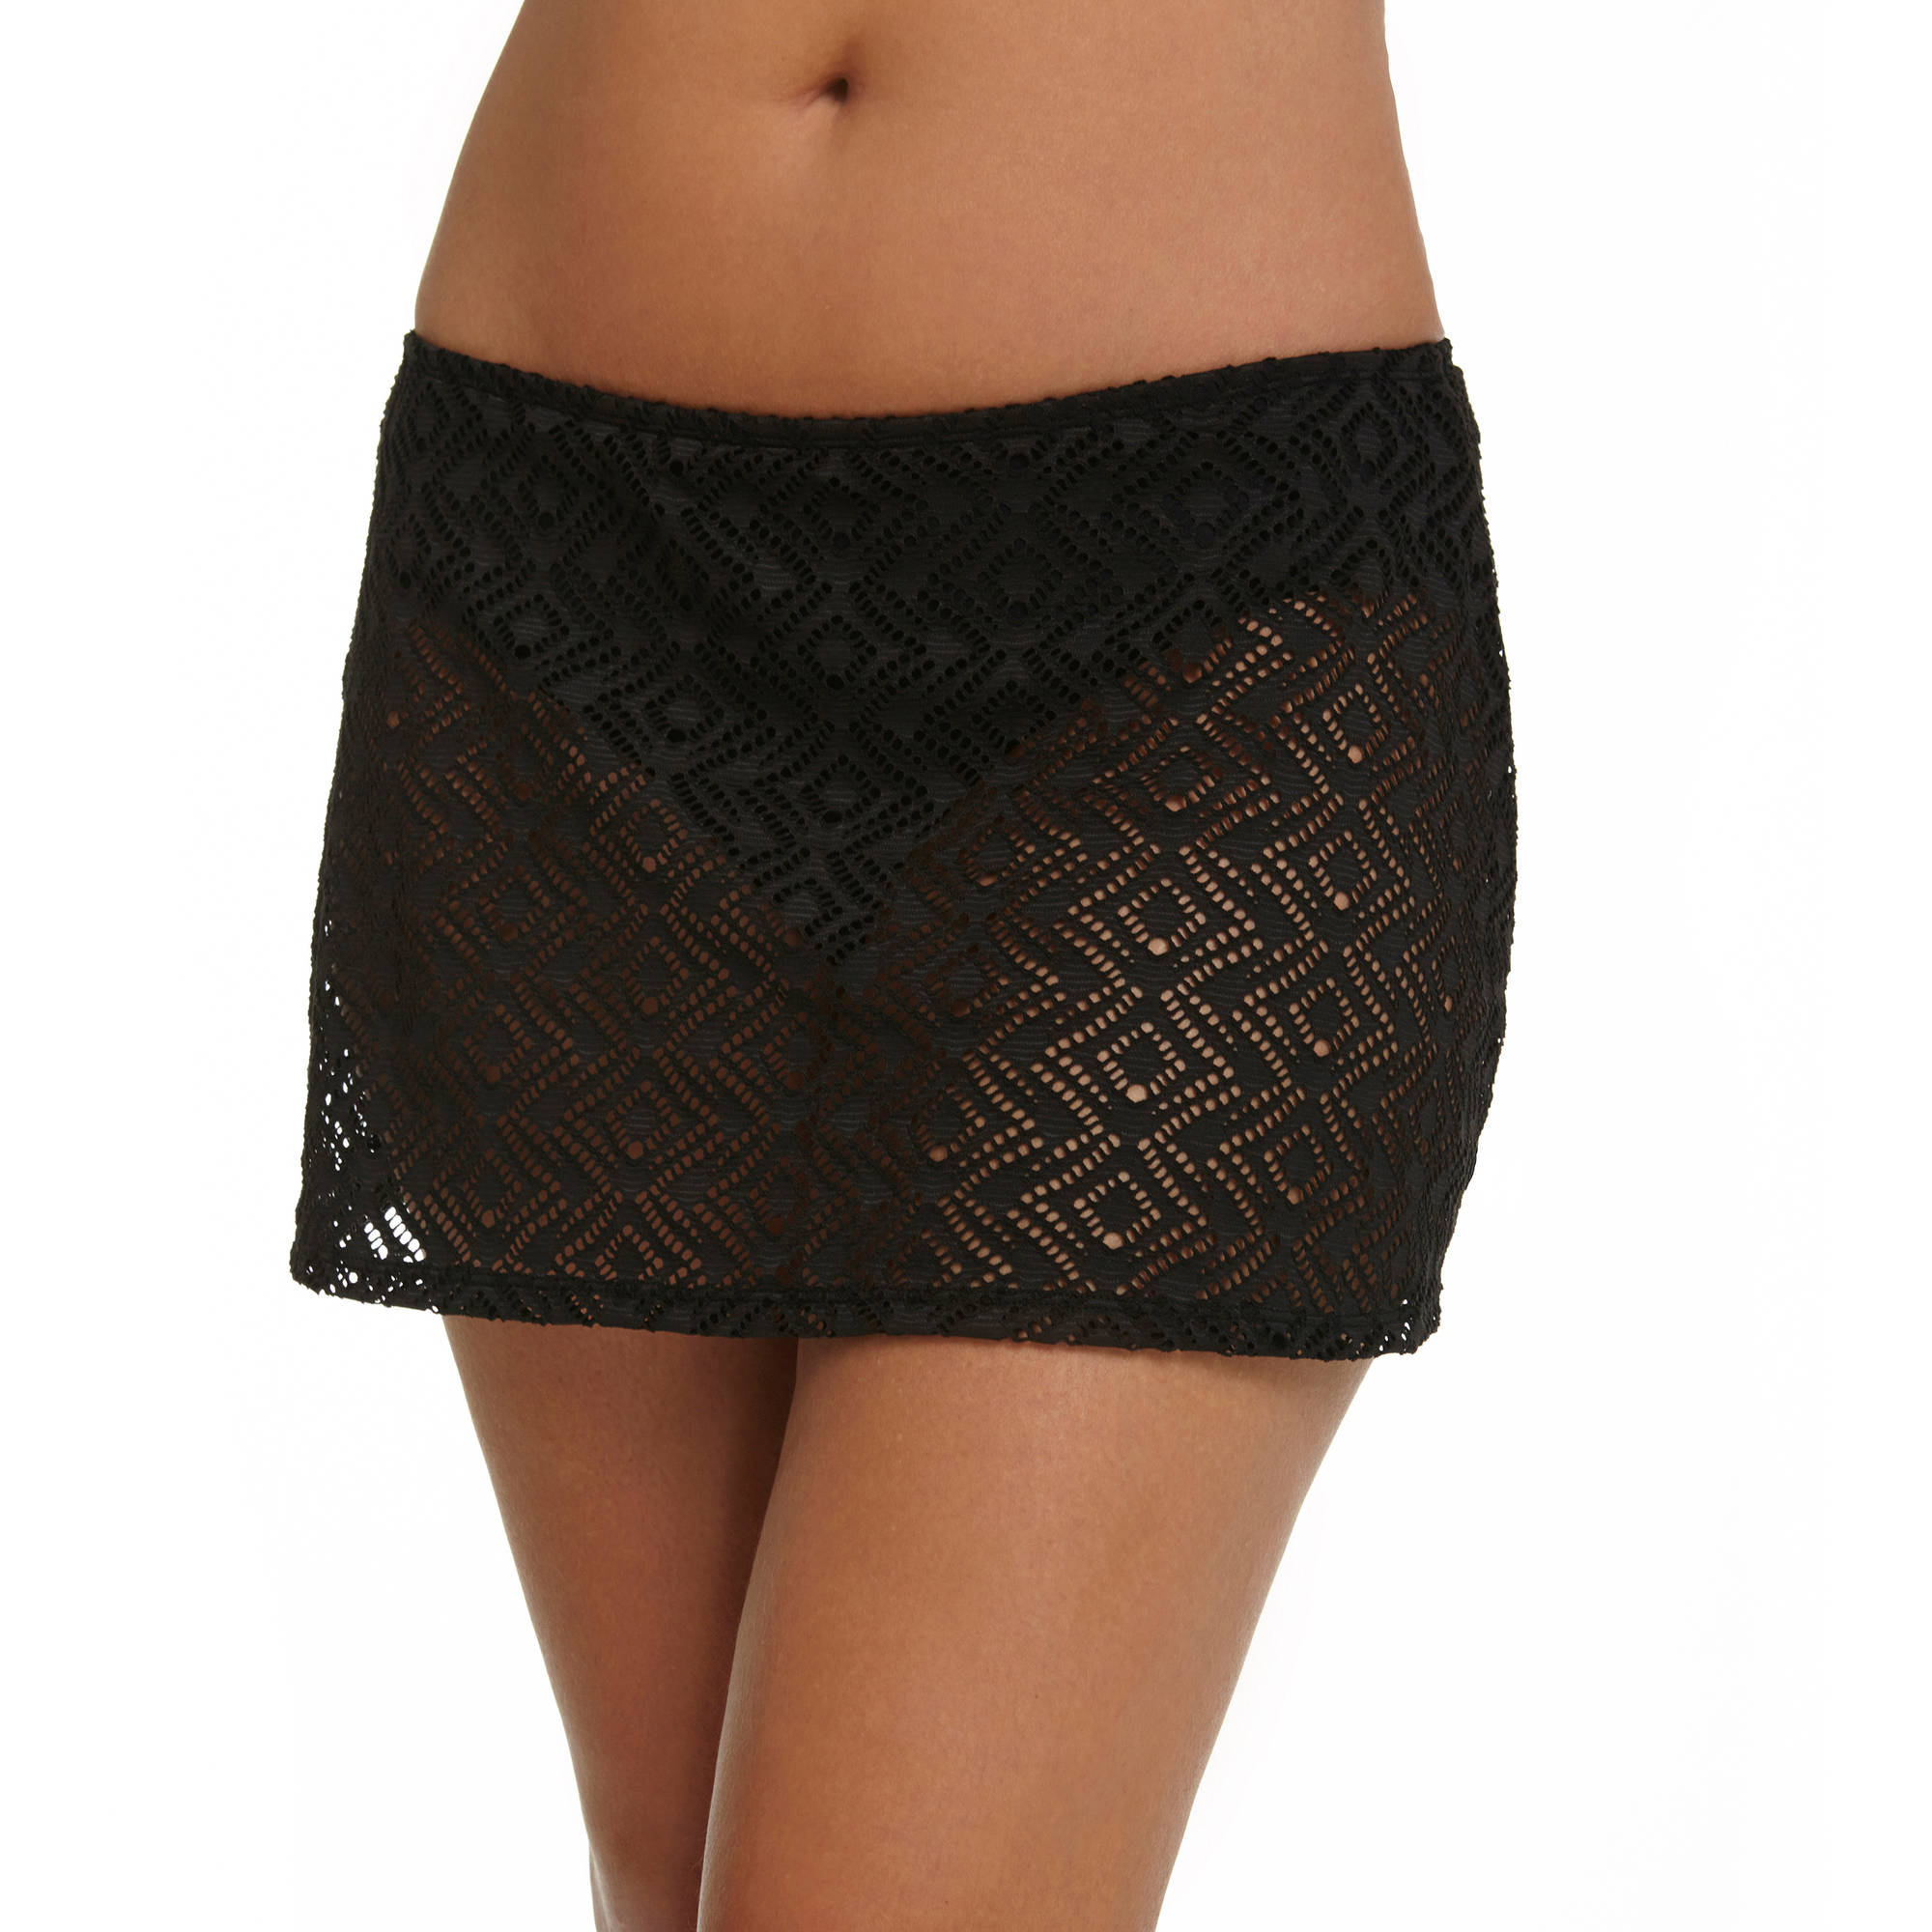 Catalina Women's Crochet Skirted Swimsuit Bottom